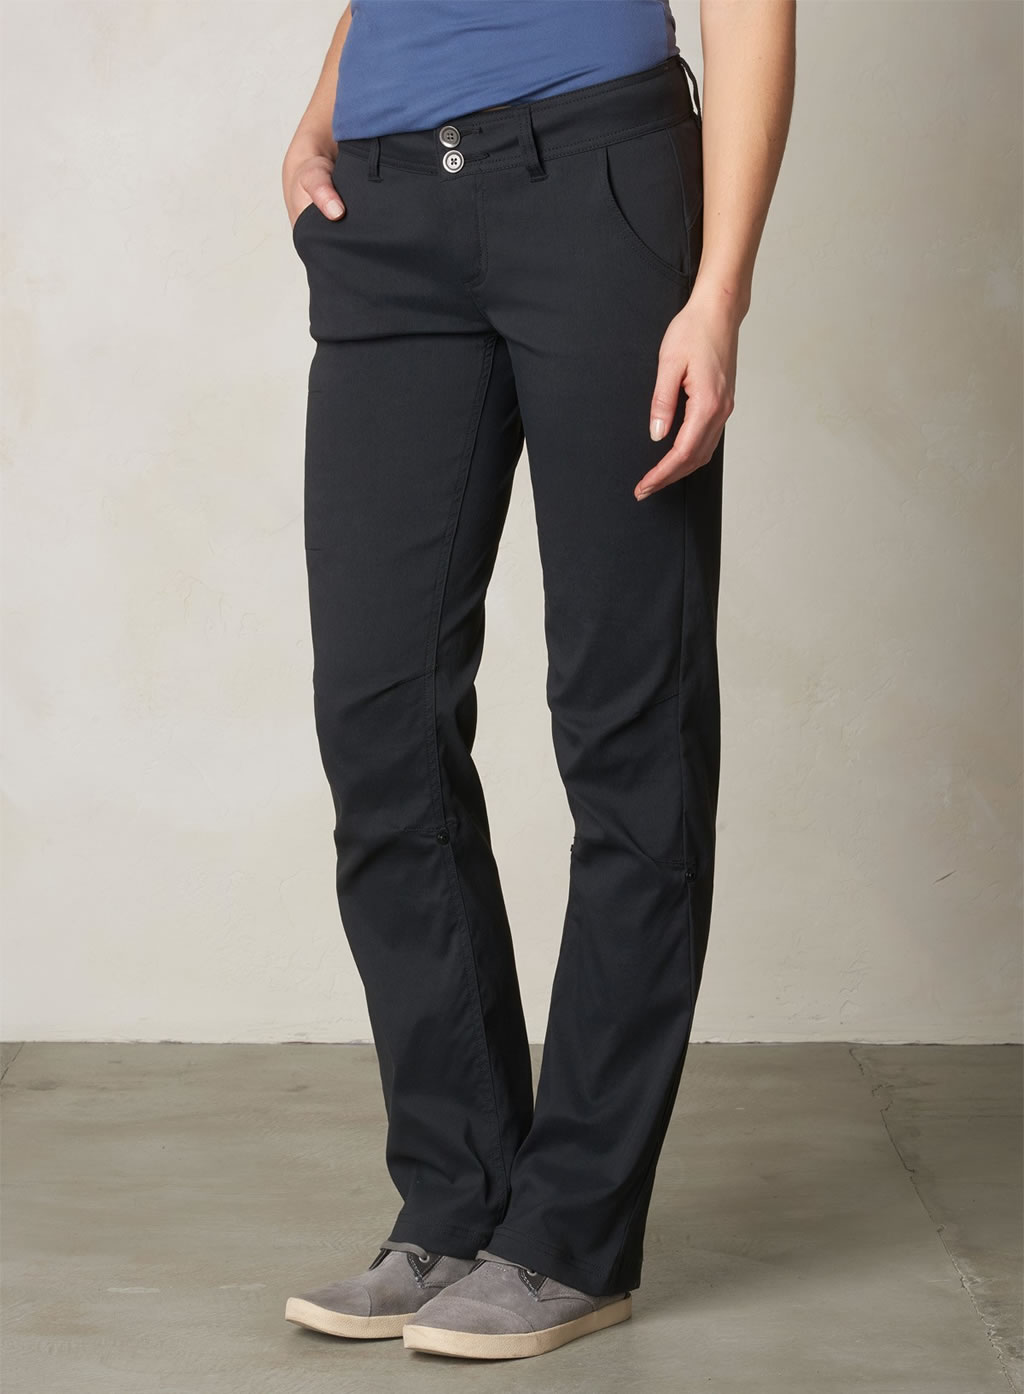 Black Halle Hiking Pants for women